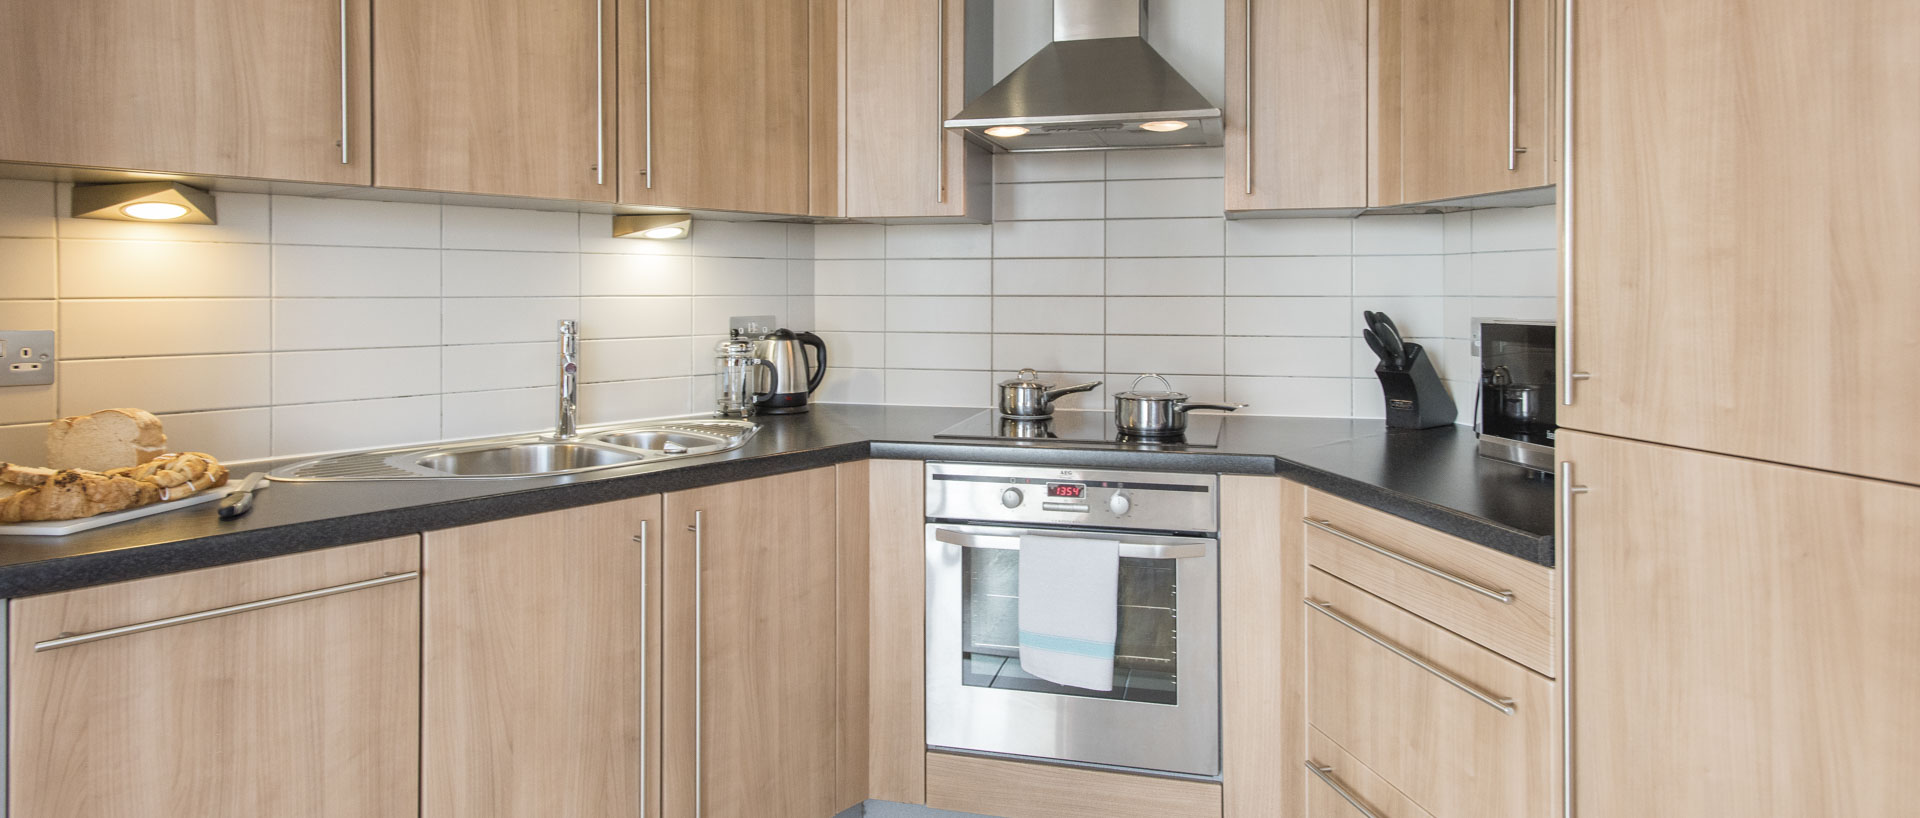 Fully equipped kitchen in PREMIER SUITES serviced apartments in Liverpool